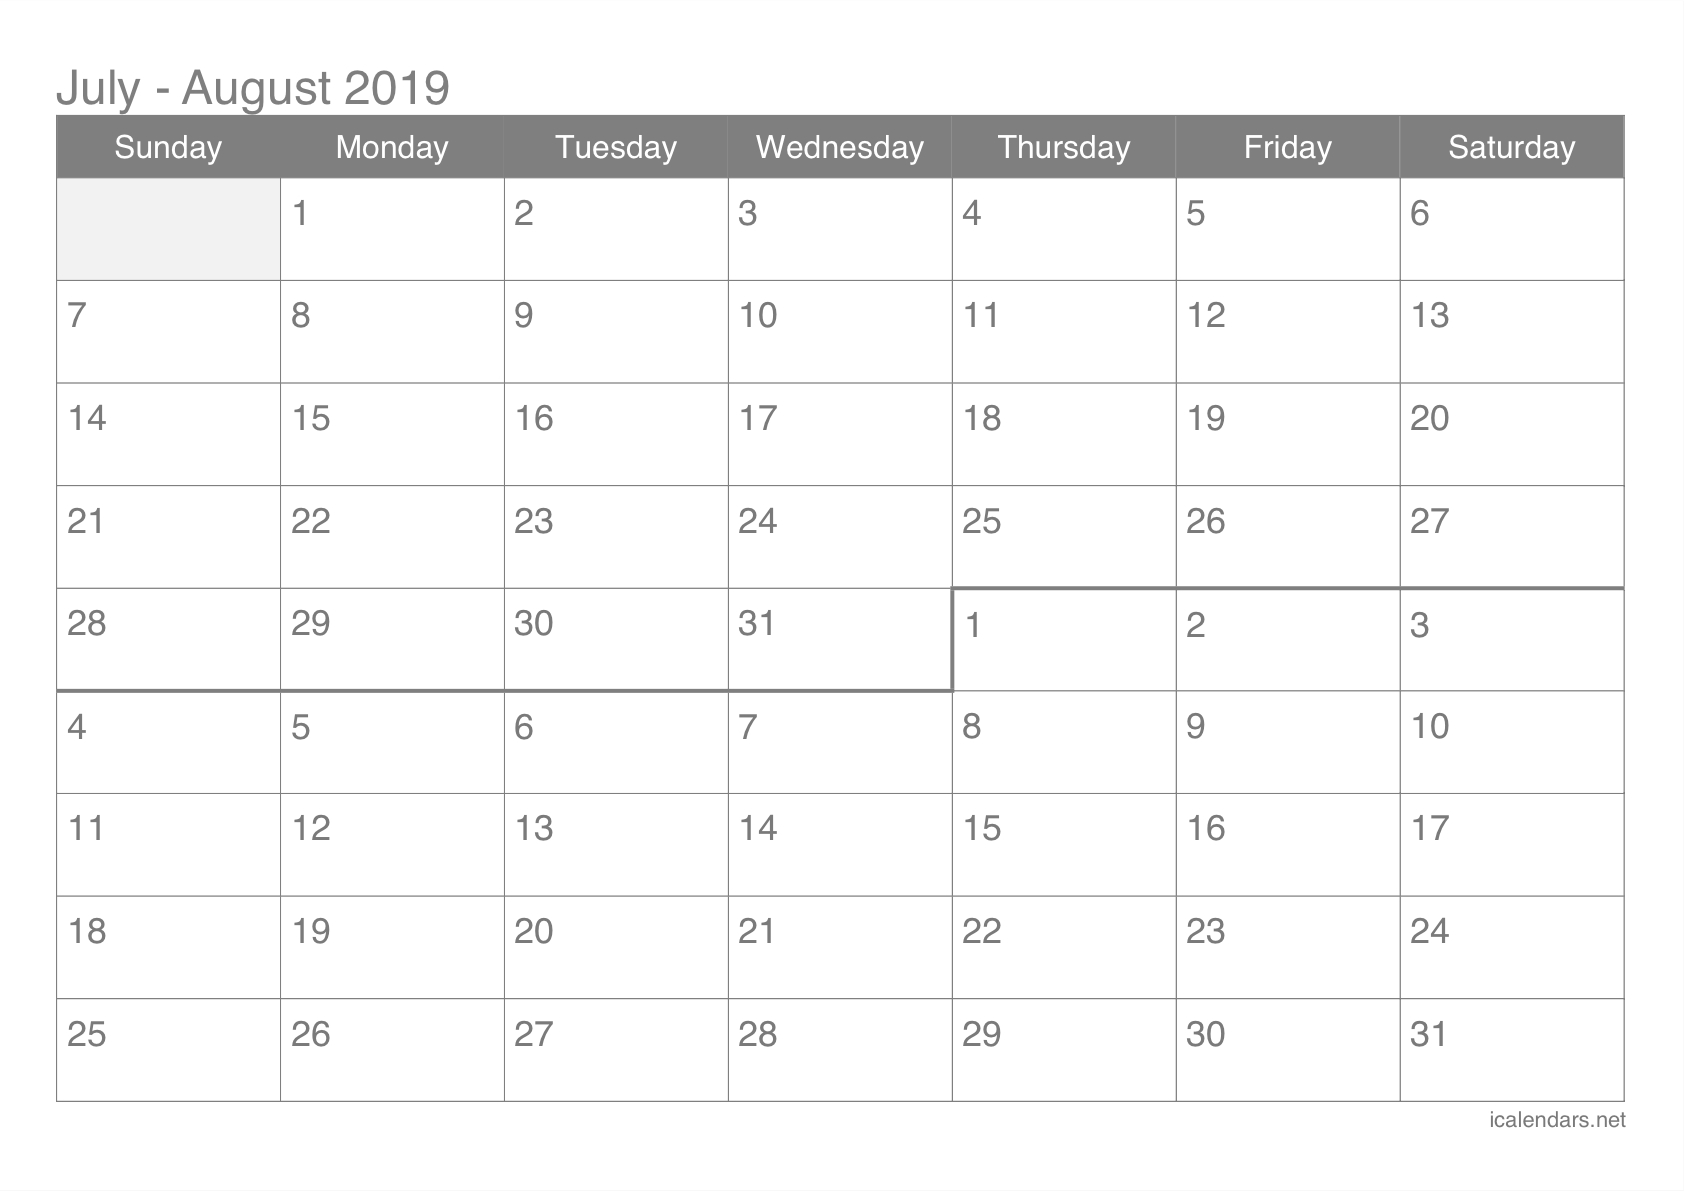 July And August 2019 Printable Calendar - Icalendars